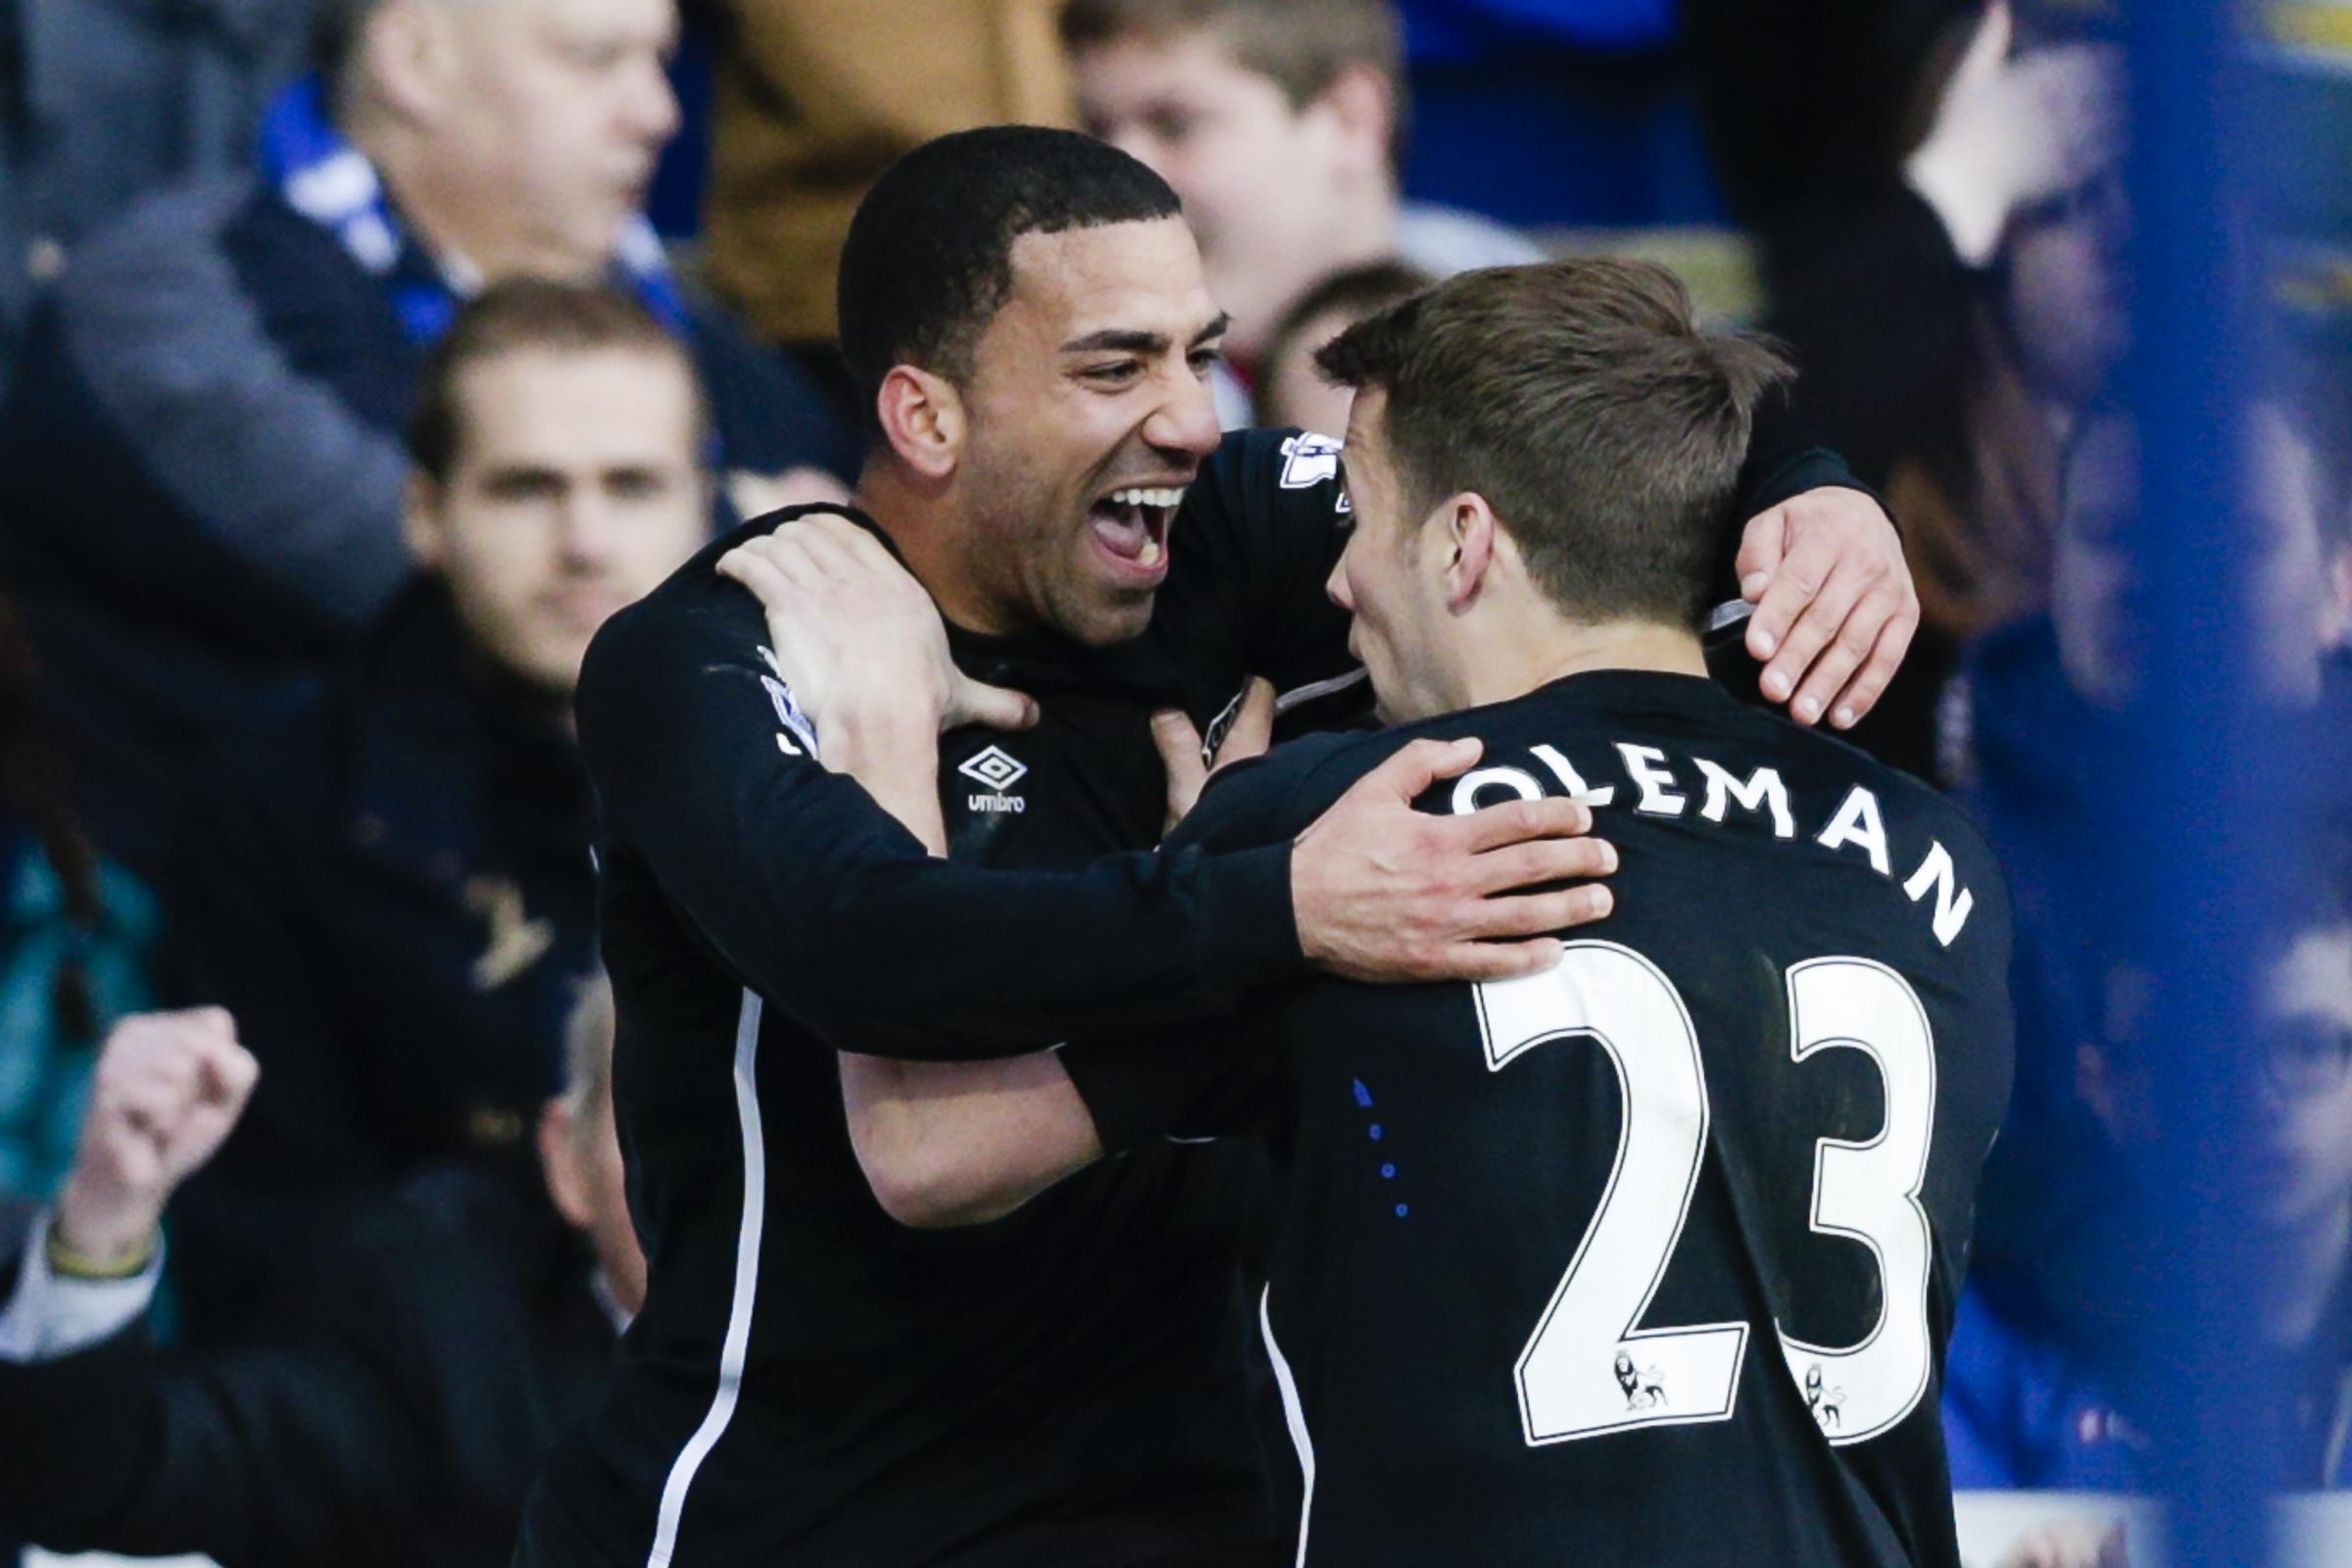 Aaron Lennon is set to complete a move to Burnley in the next 48 hours